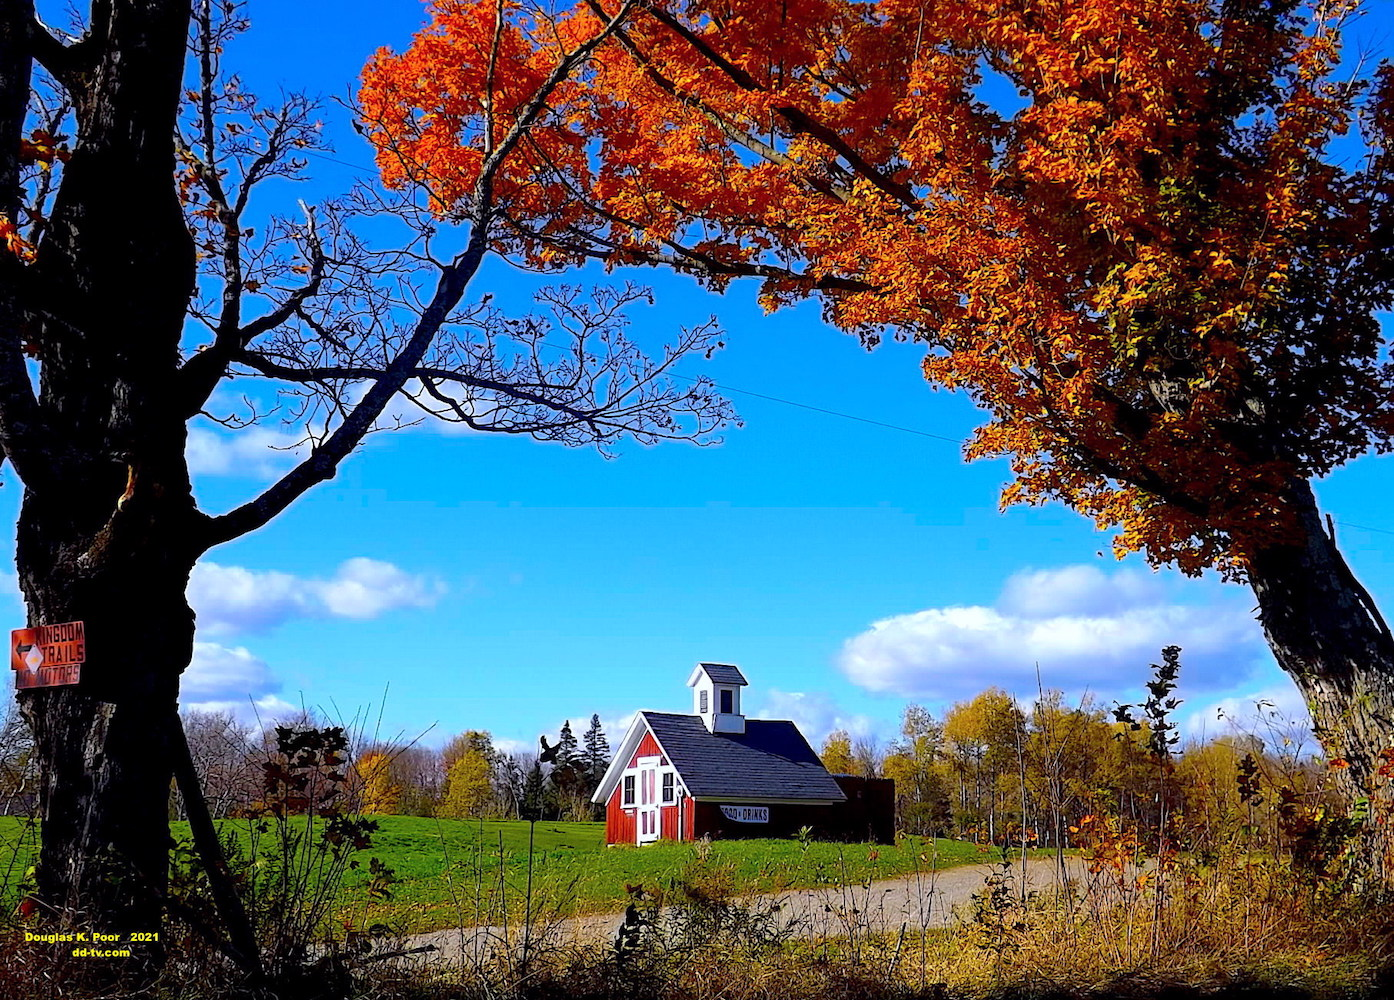 -----------============================================================================================================================================================================RED-MINIATURE-BARN-AND-TREES